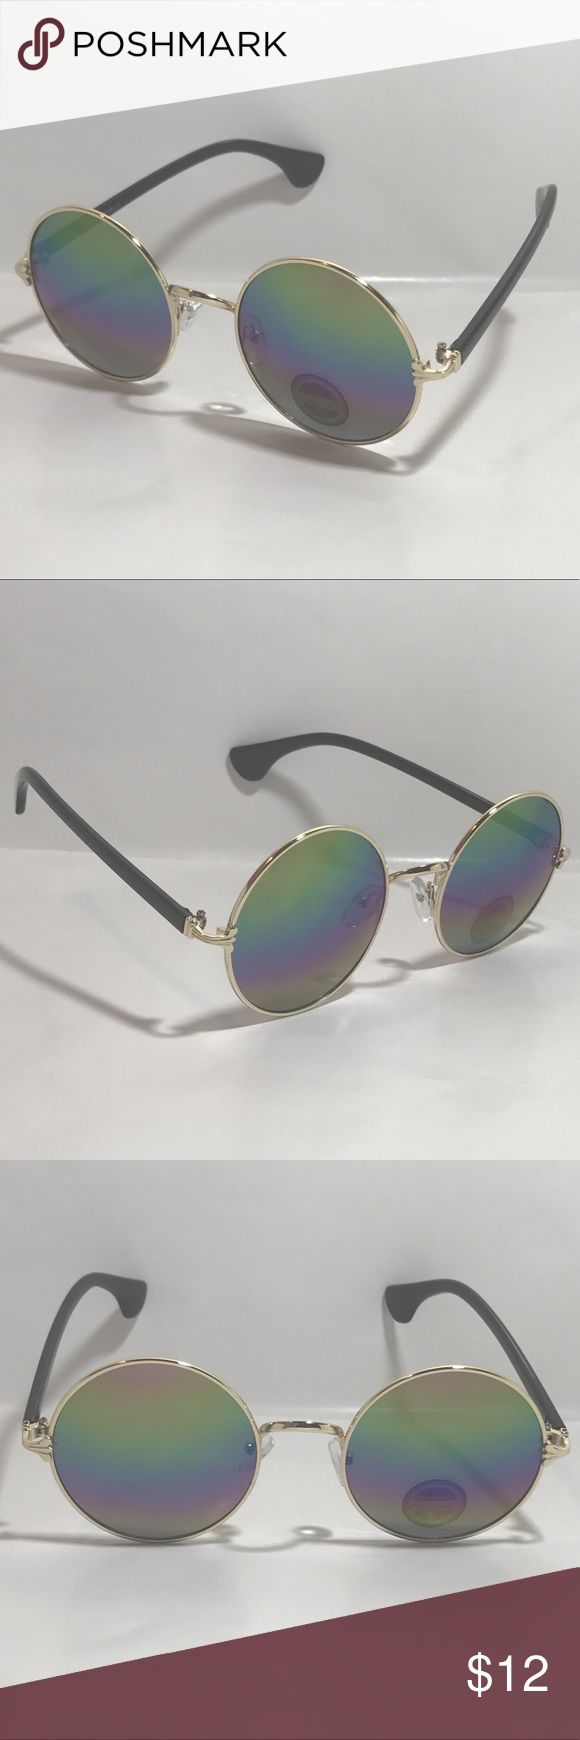 Circle Rainbow Mirrored Lens Sunglasses 1 Pair of Circle Sunglasses  Black/Gold Frame Rainbow Mirror Lenses Nose Pieces Slightly Oversize Lenses High Quality 100% UV Protection Men   Women   Unisex  1 Free Black Microfiber Pouch  Shipping: All orders ship within 24 hours of purchase Monday - Friday :-)  9051 Accessories Sunglasses